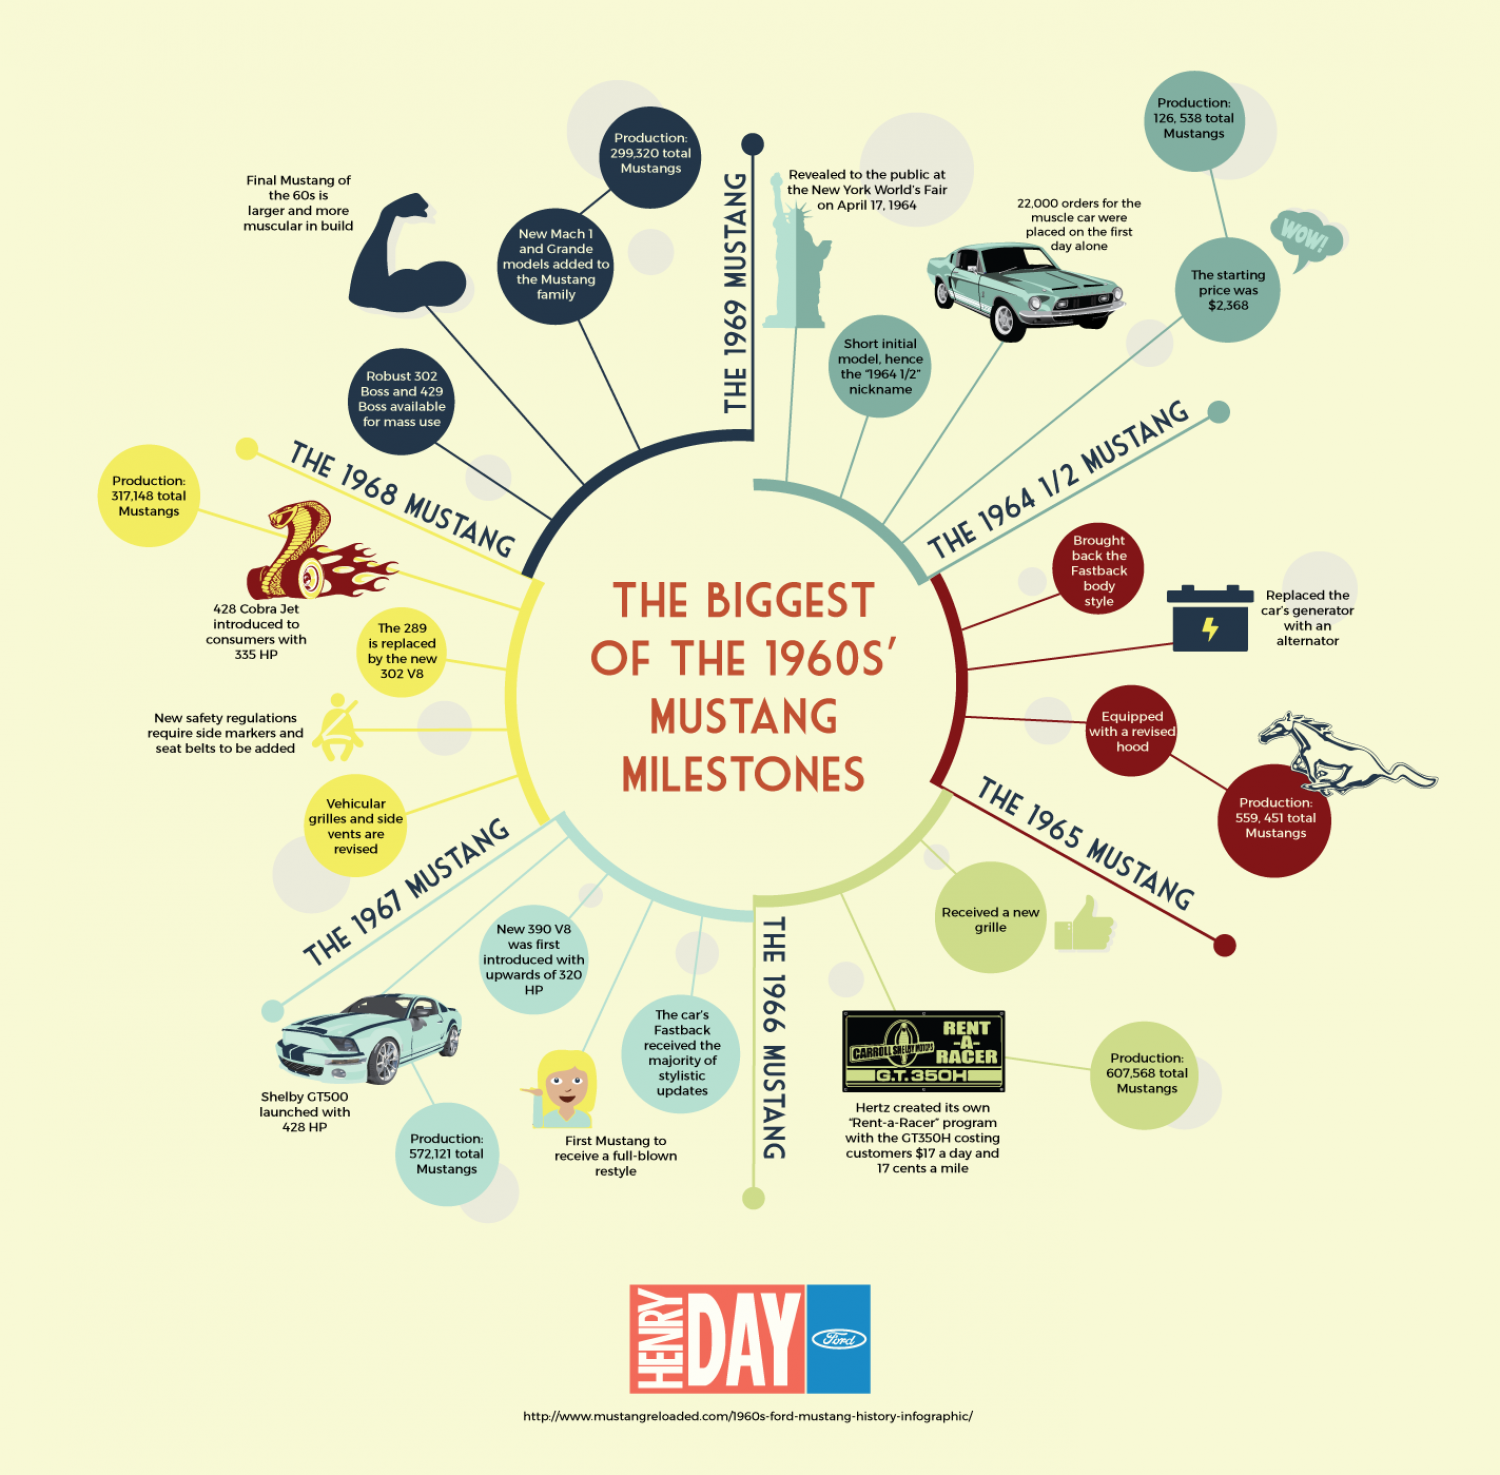 The Most Impressive of the 1960s' Mustang Milestones Infographic